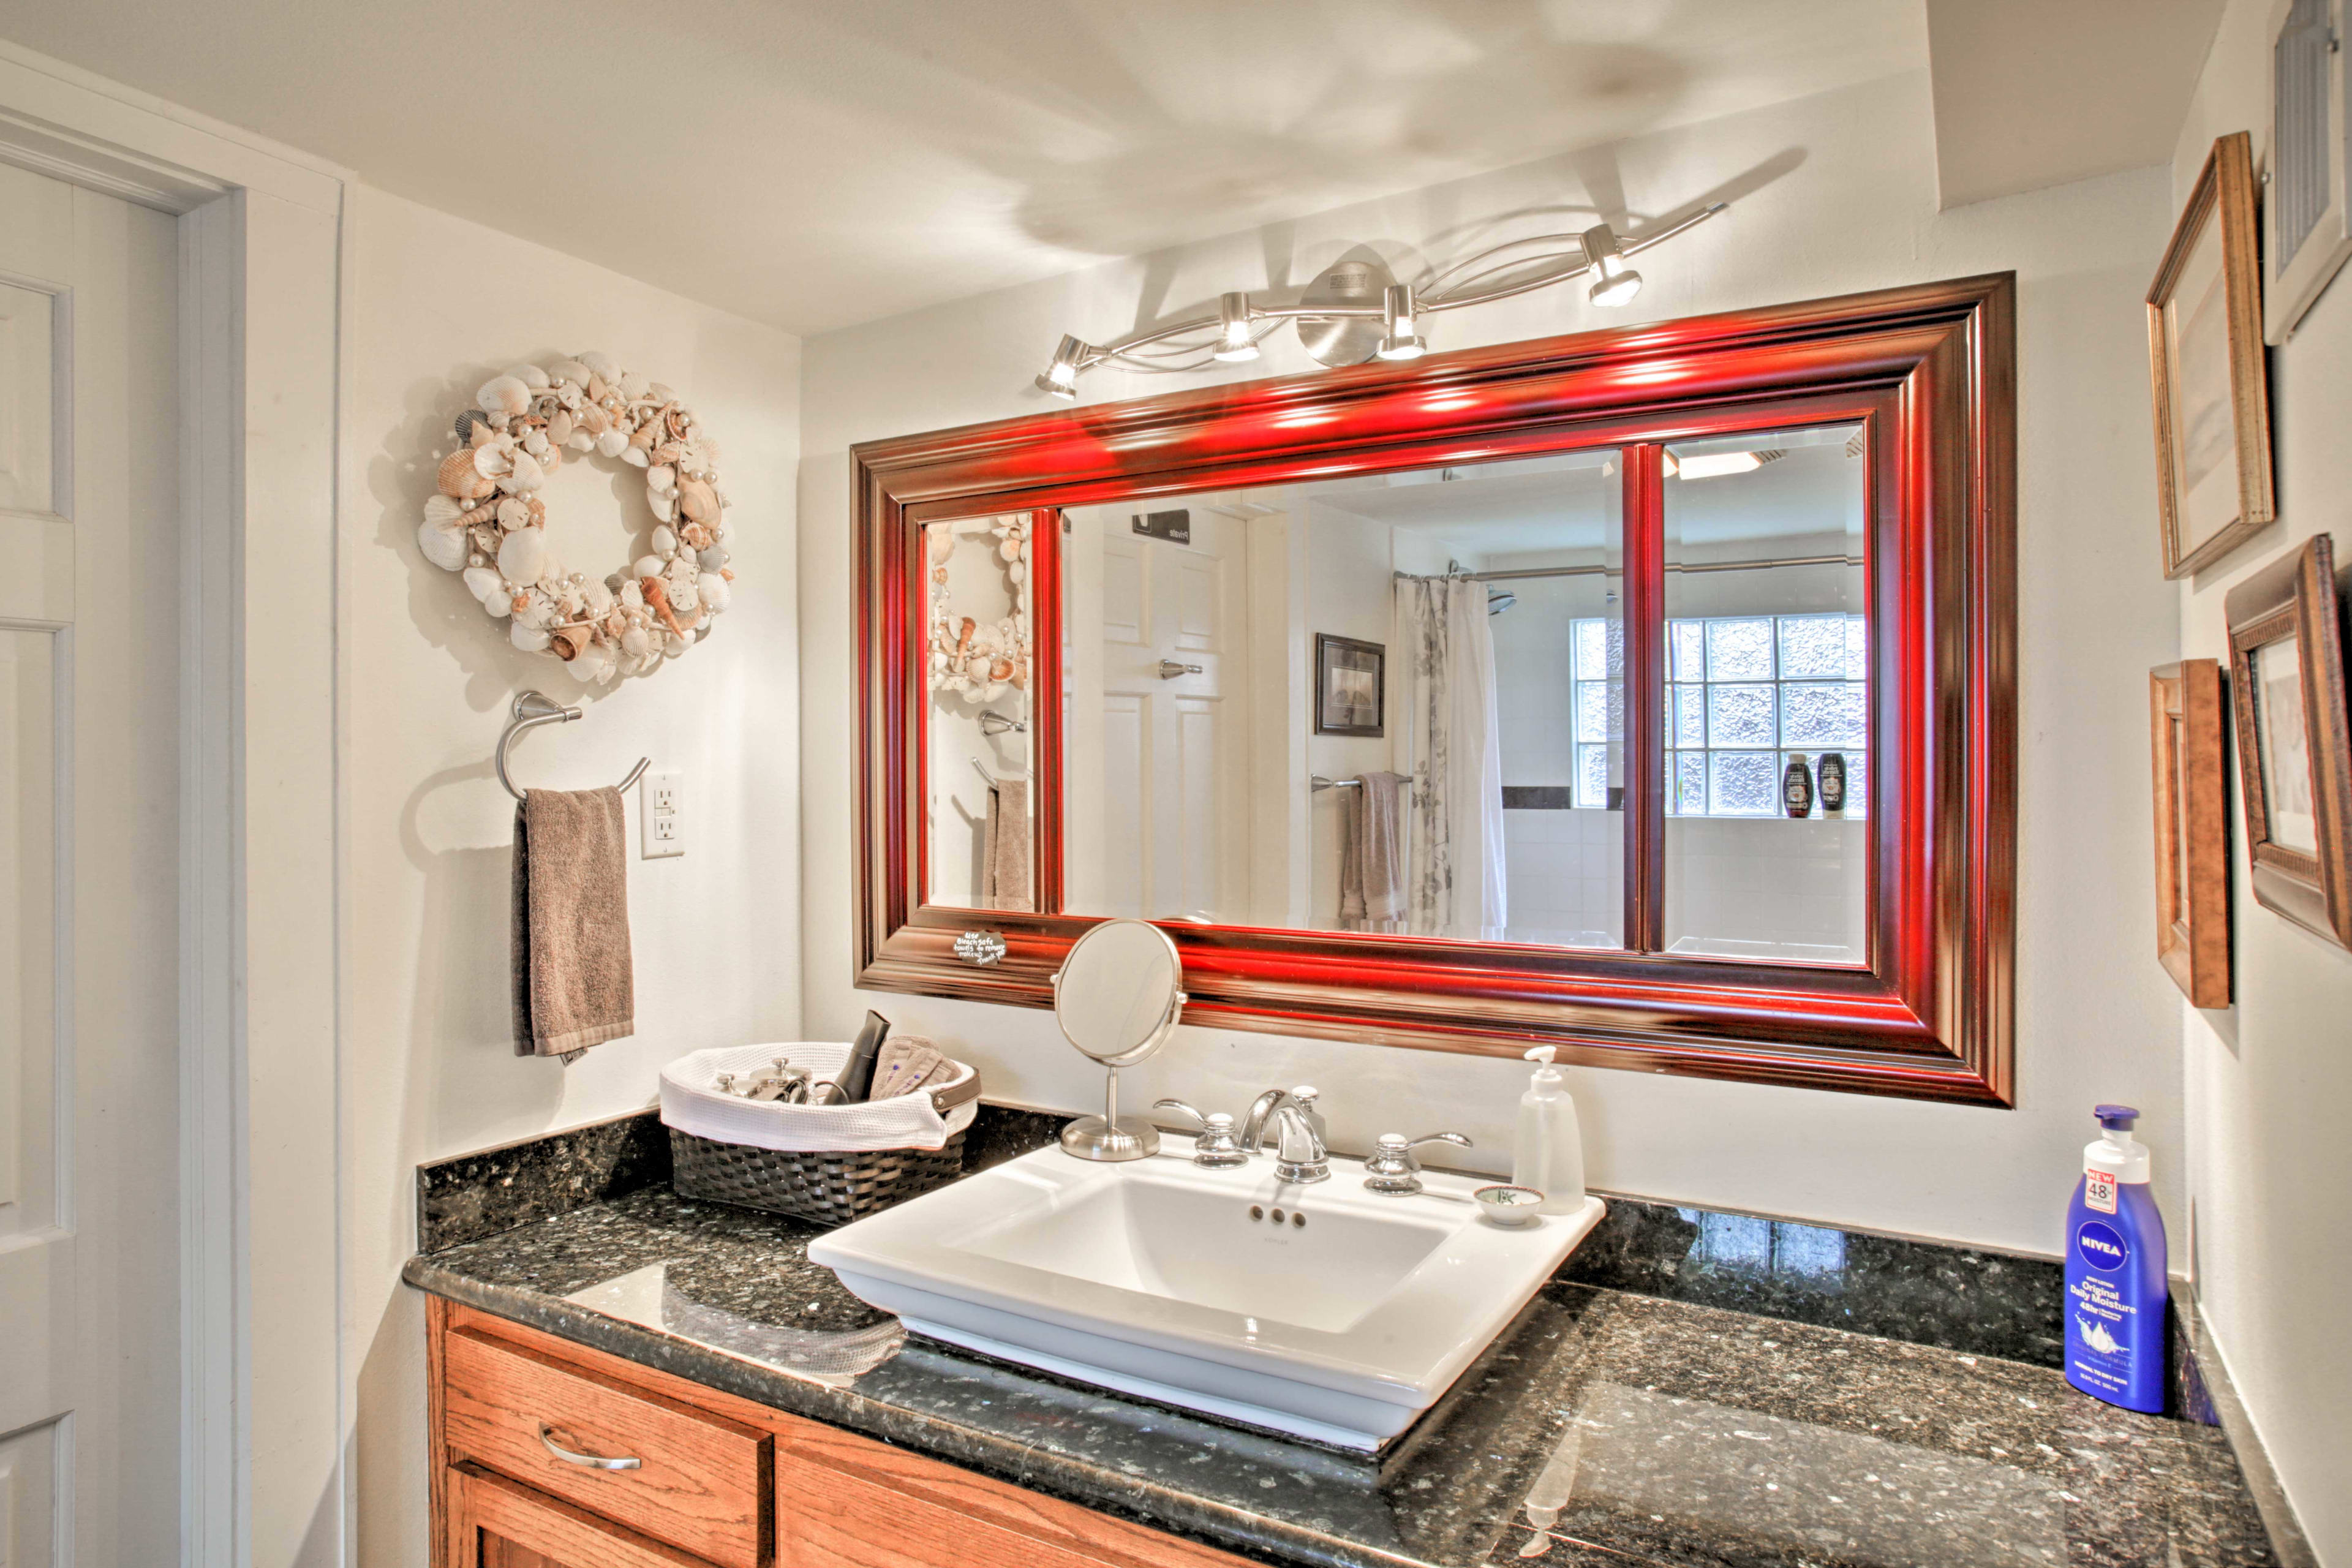 Wash up on top of these granite countertops.